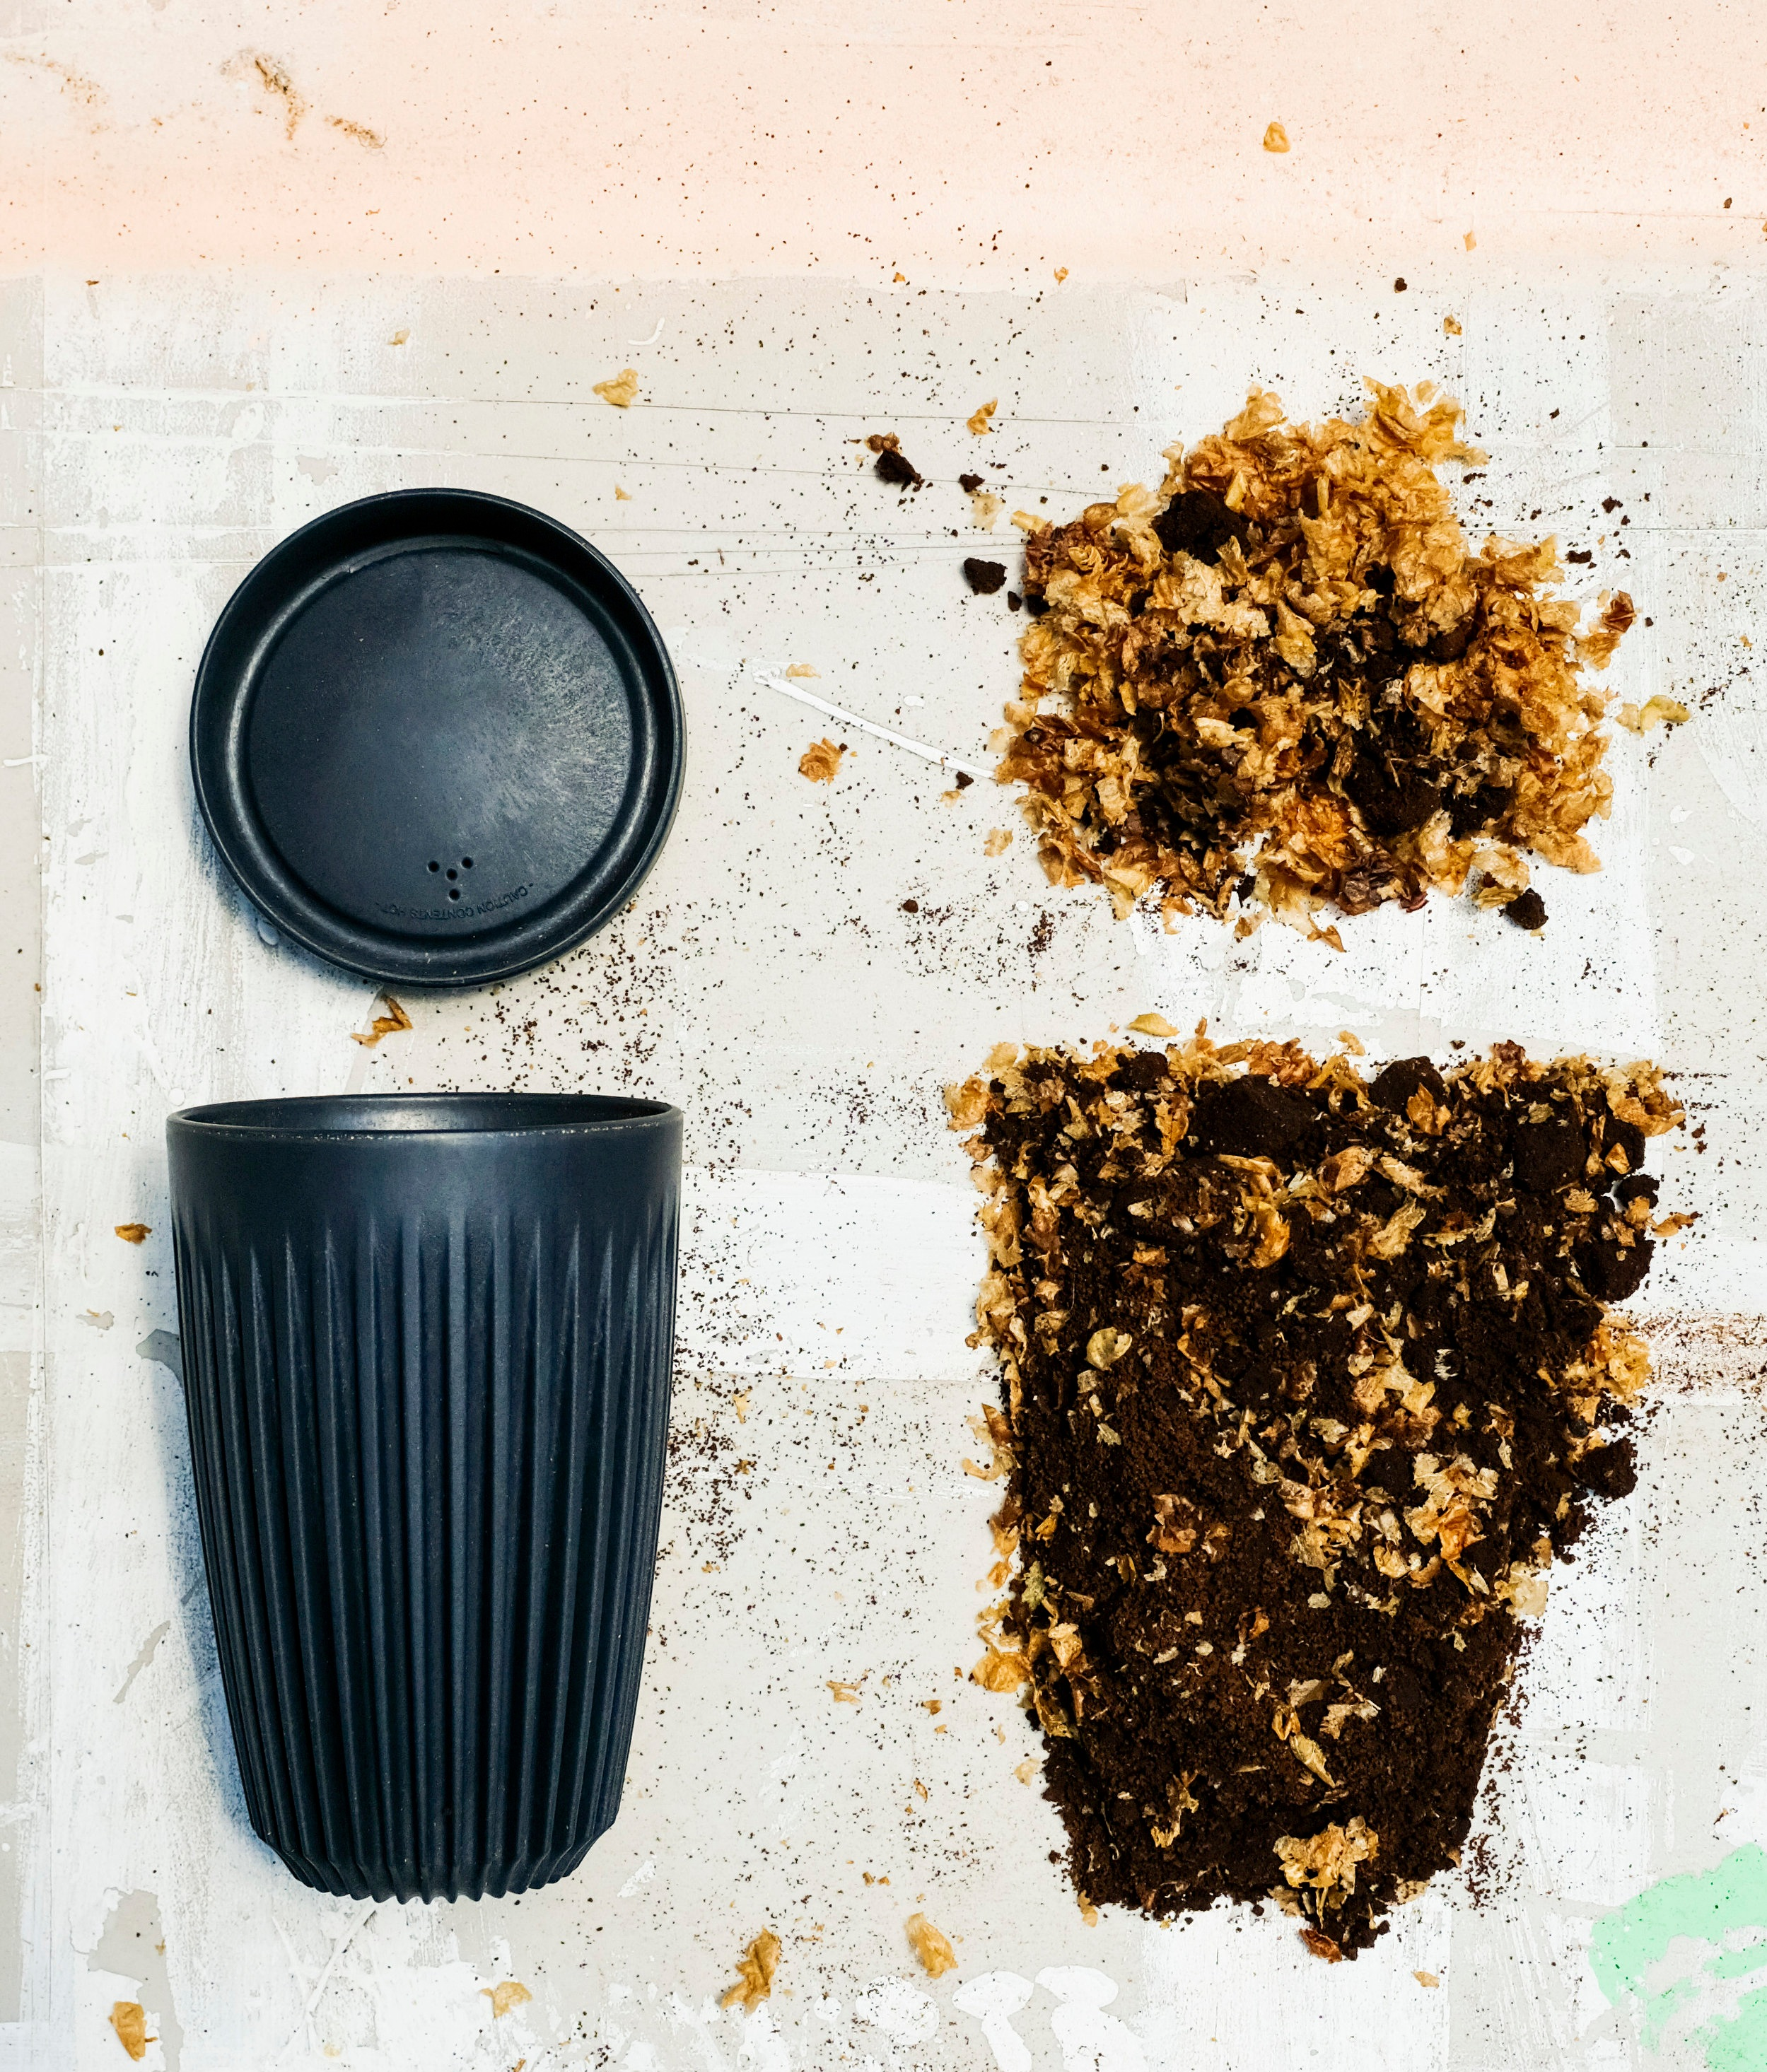 How HuskeeSwap works. - Buy a durable, elegant Huskee cup (made with upcycled coffee husks) at Think Coffee (or any place where Huskee cups are sold).Bring it back to us after use.We will exchange it and serve your drink in a fresh, clean cup every time.